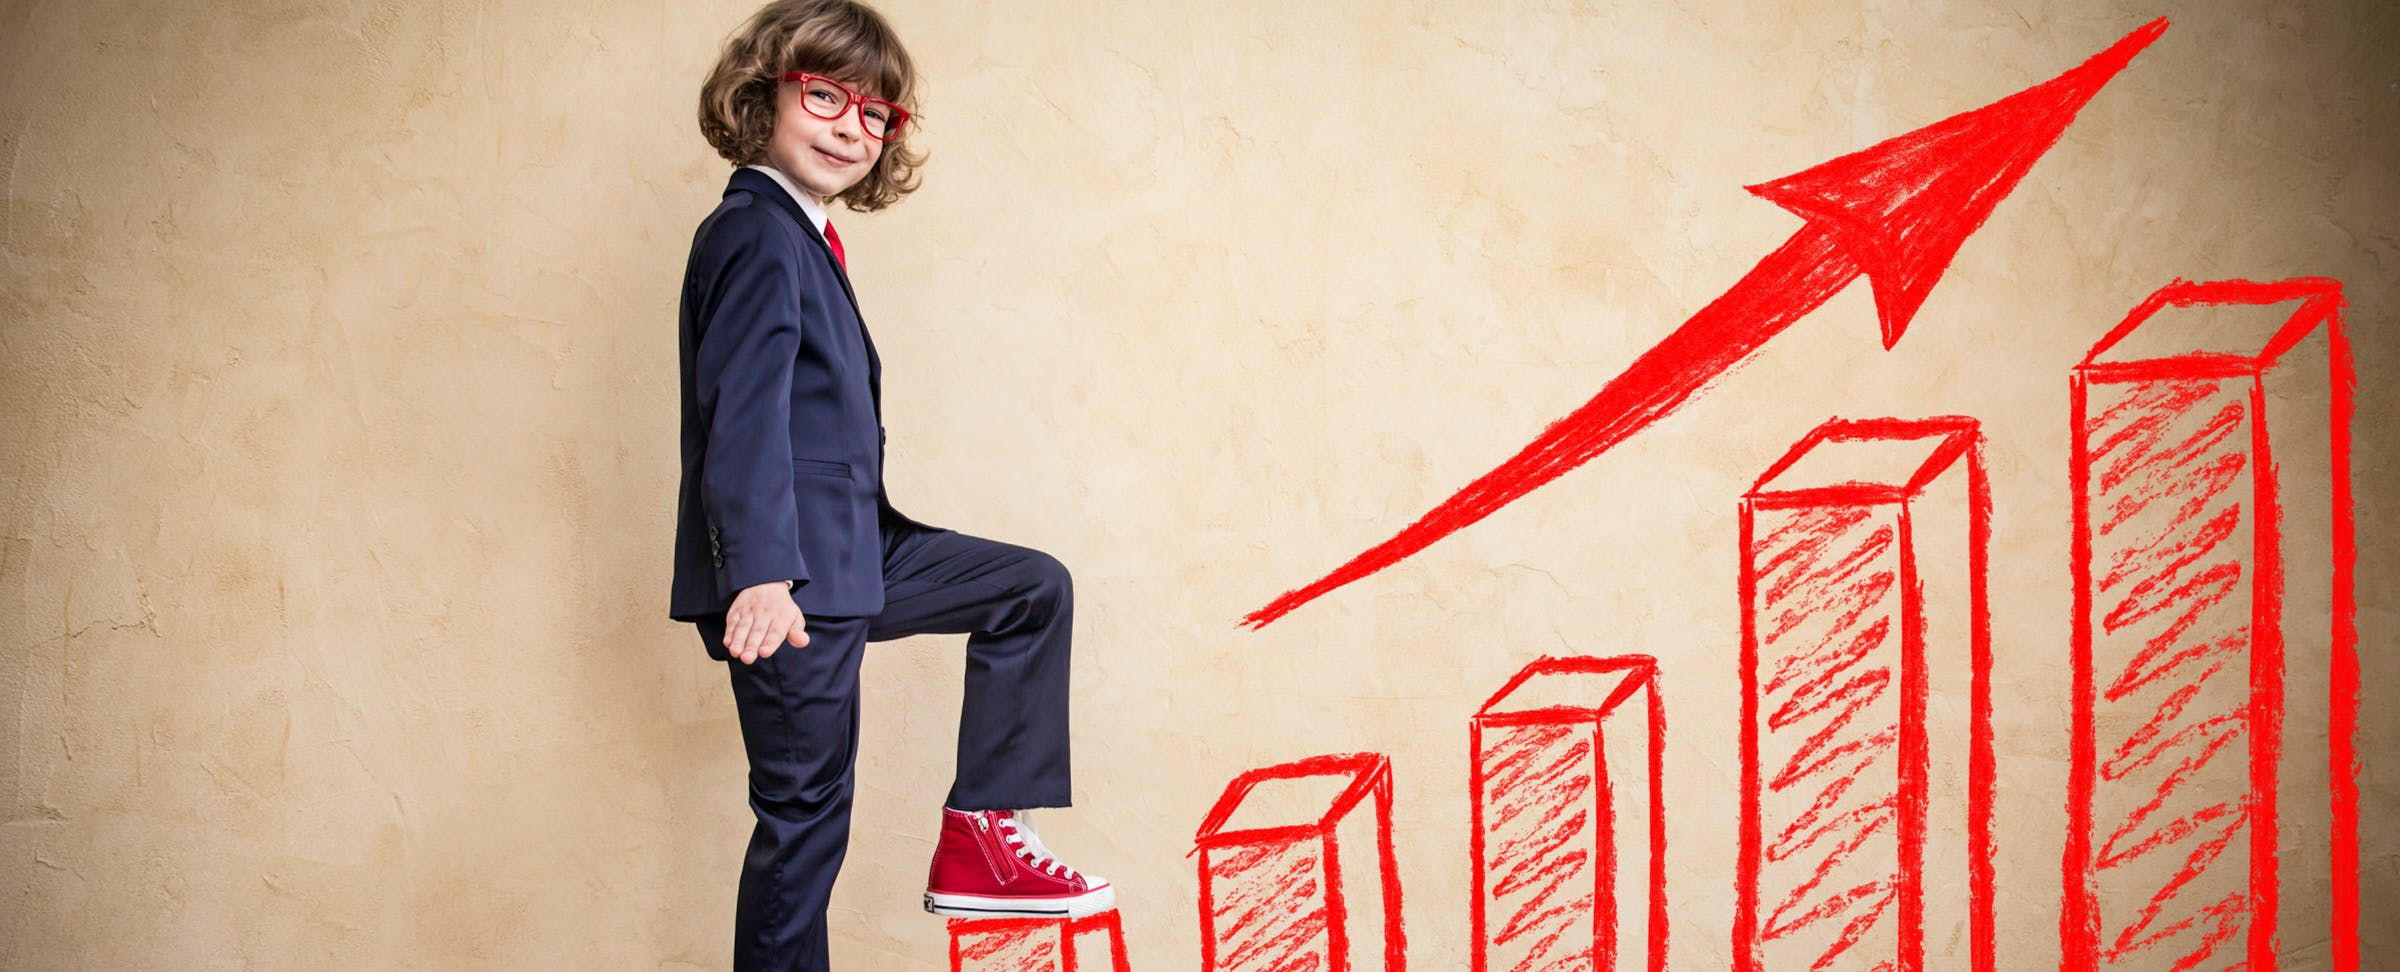 how to measure success without academic achievement